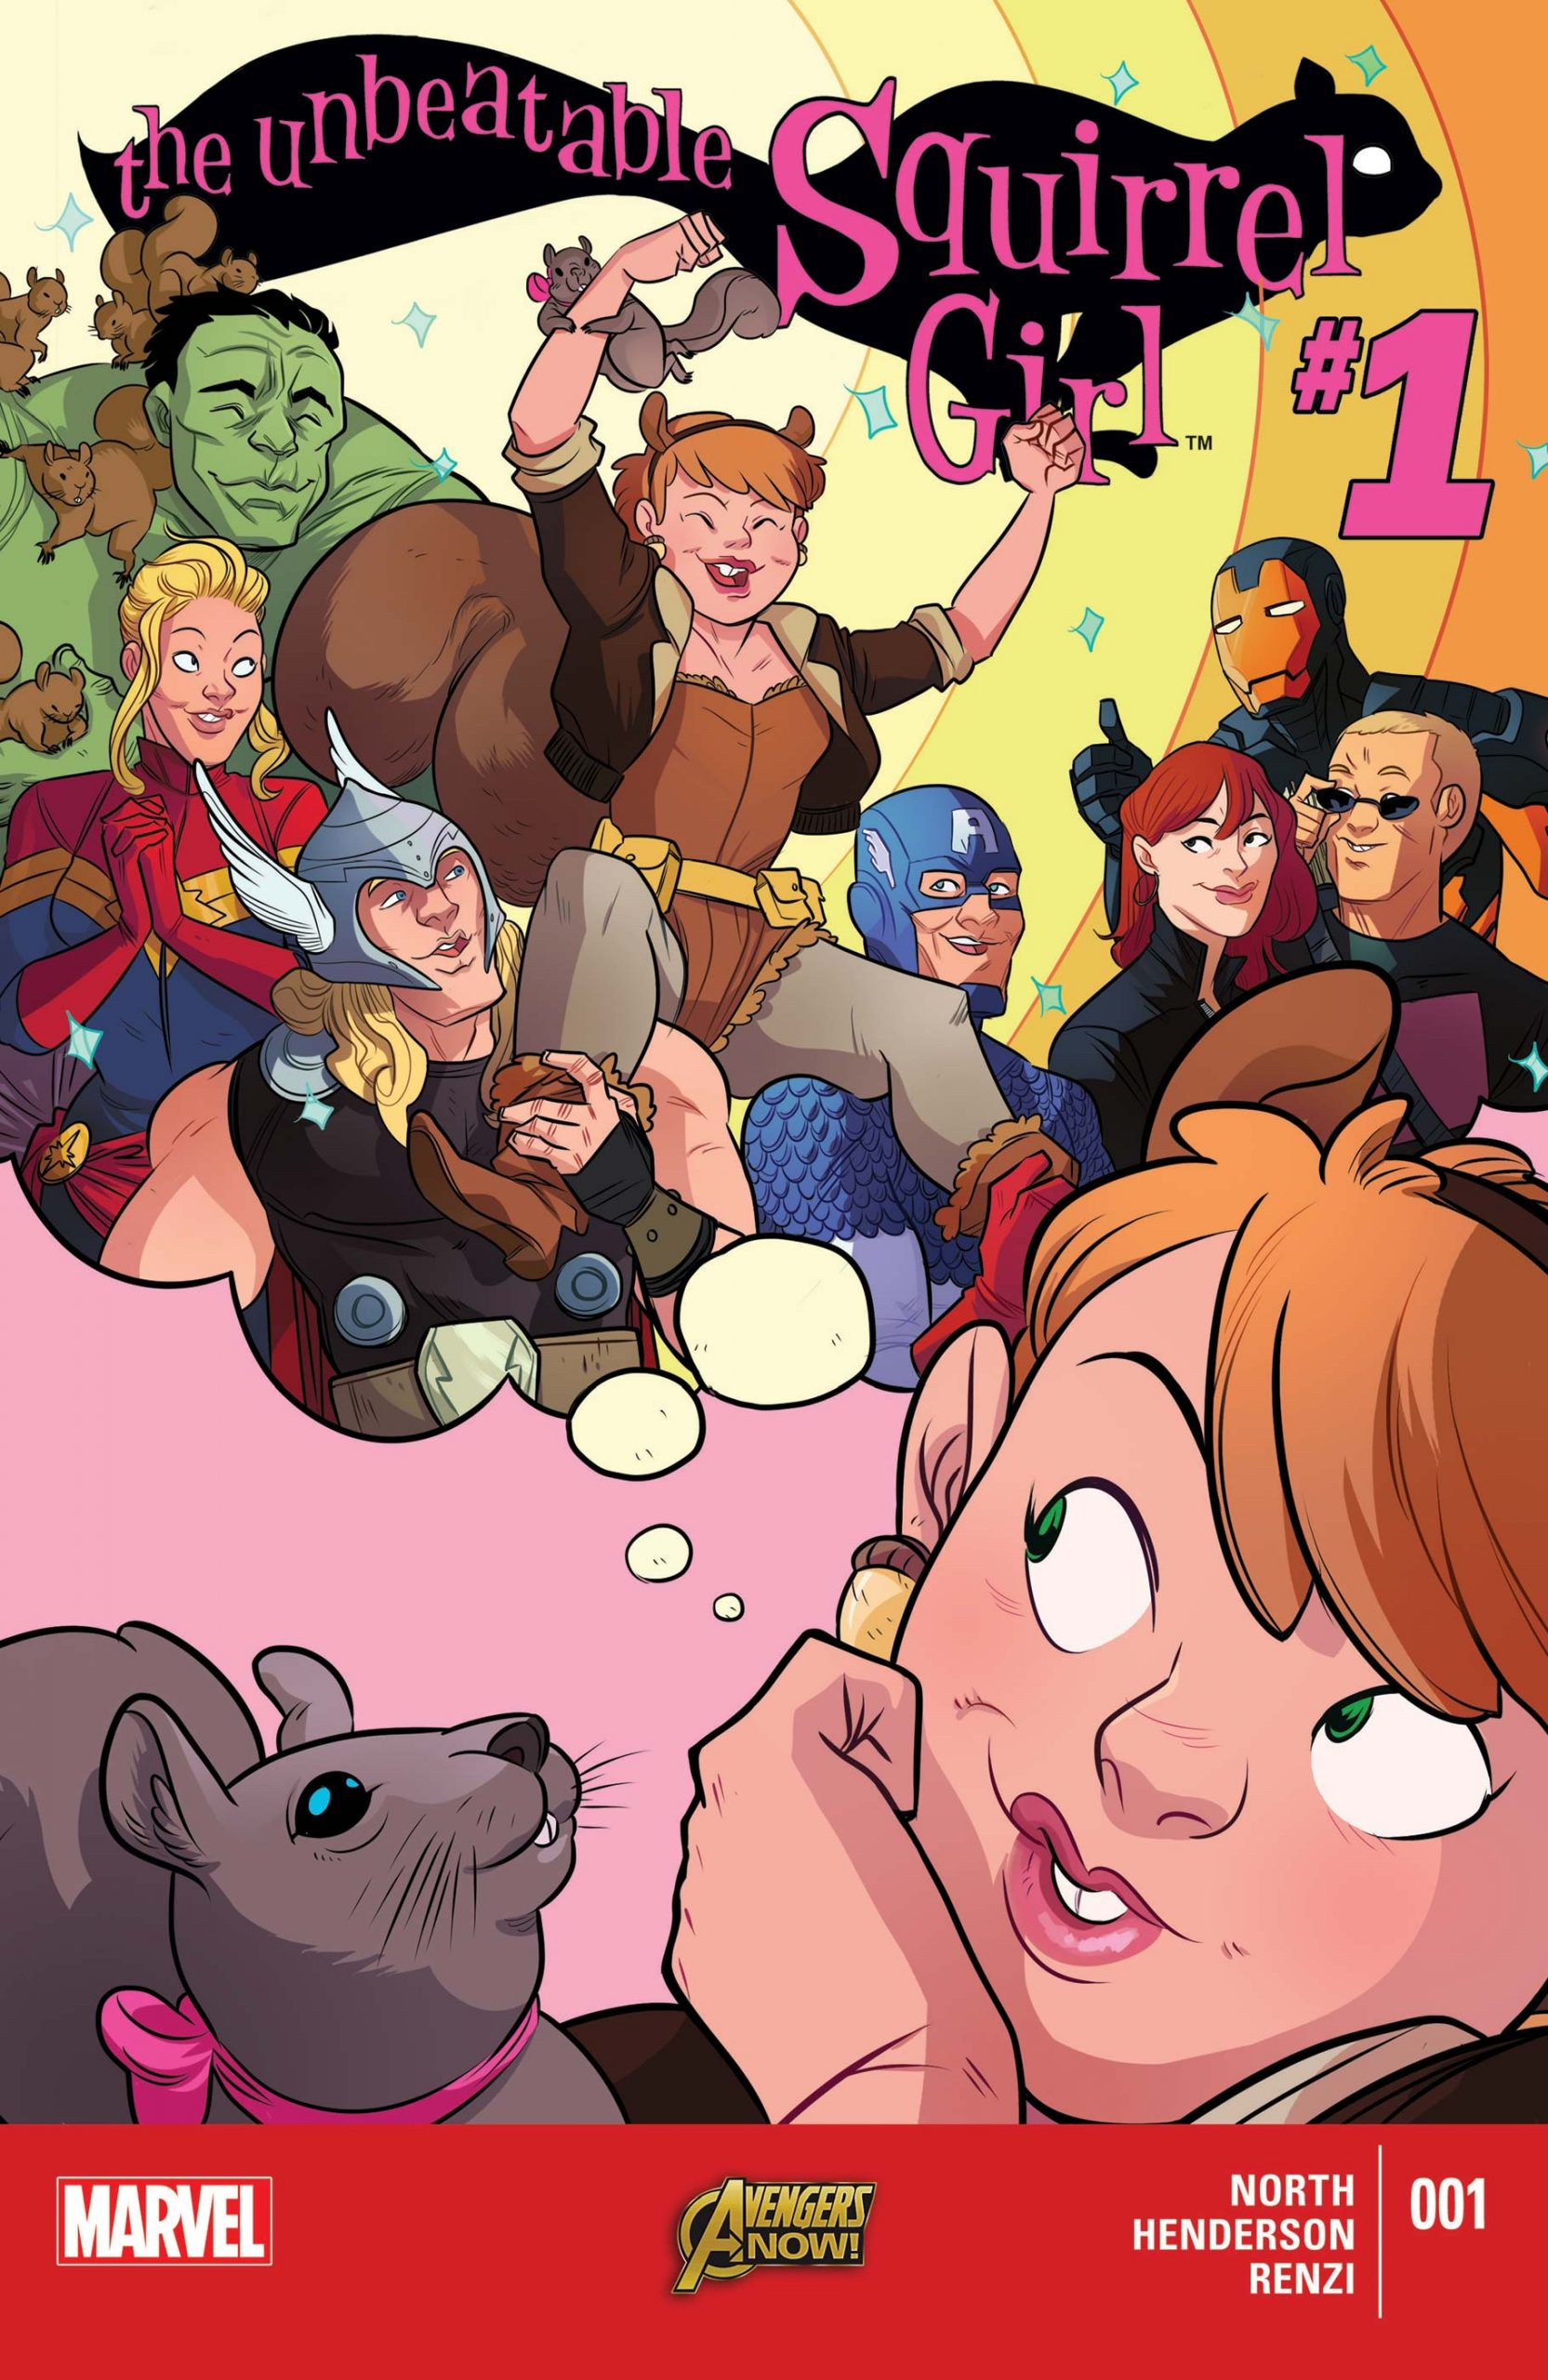 The Unbeatable Squirrel Girl (2015) #1 on Marvel Unlimited